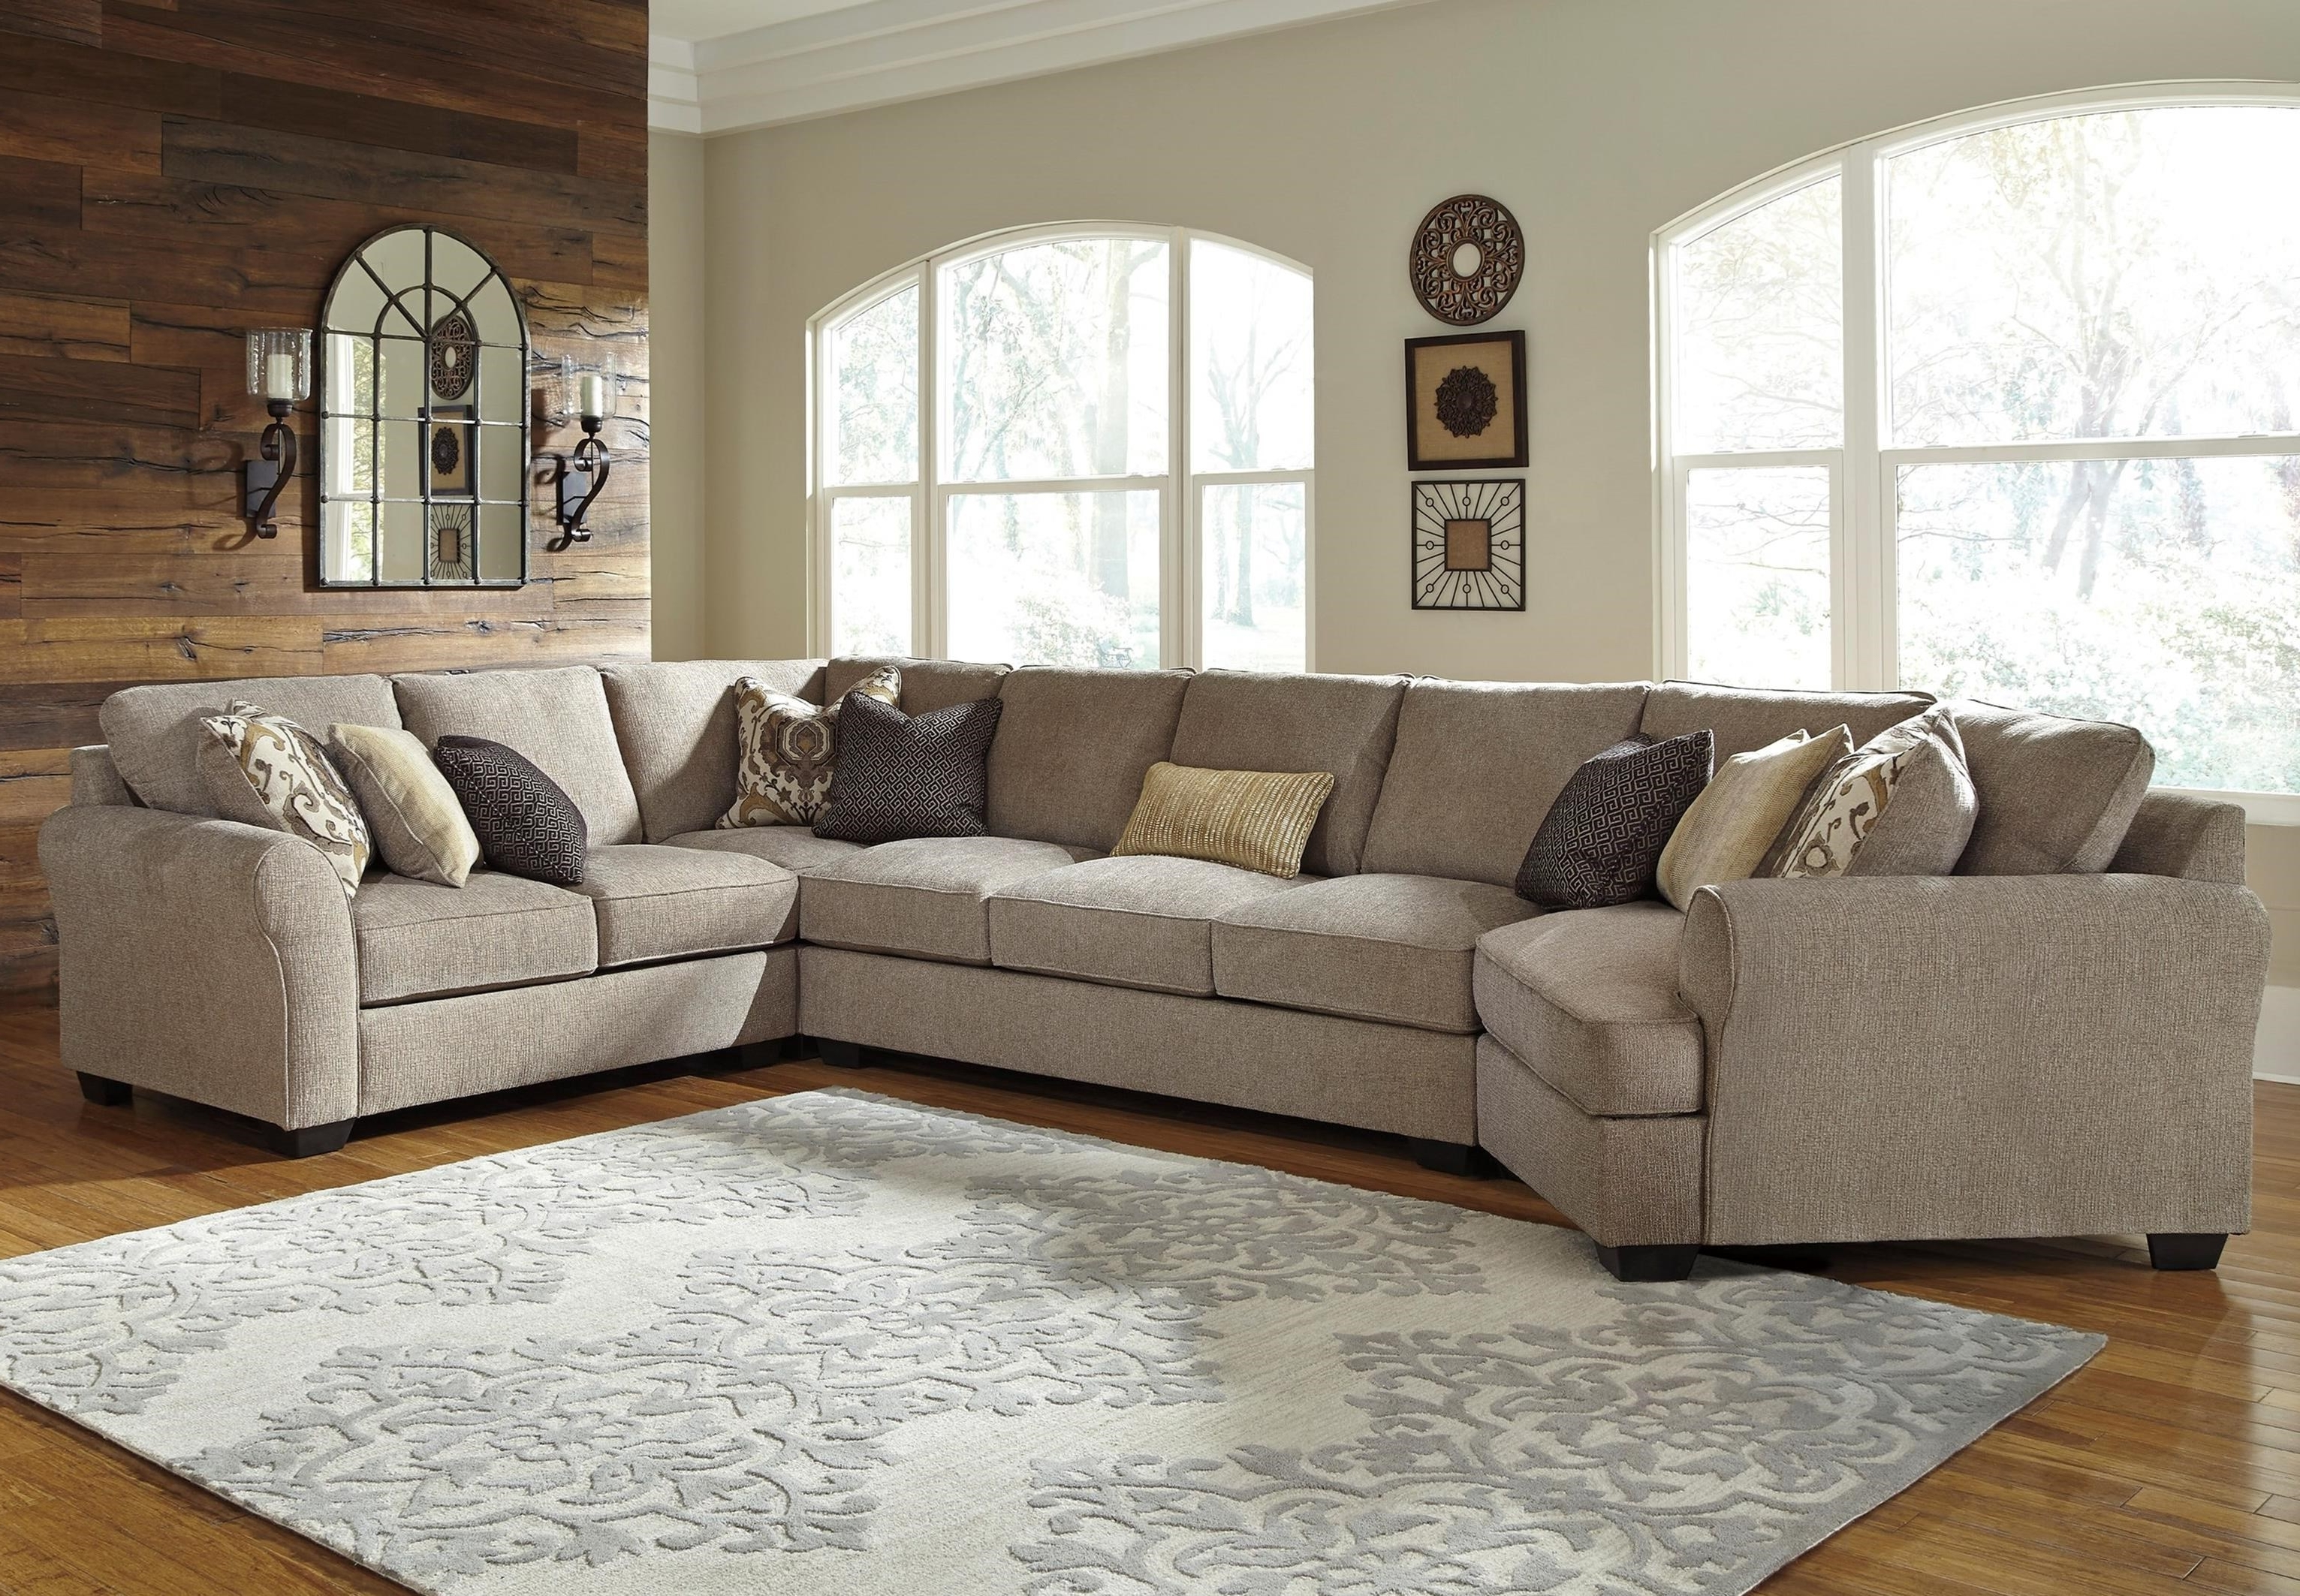 Benchcraft Pantomine 4 Piece Sectional With Left Cuddler & Armless With Most Current Sectional Sofas With Cuddler (View 2 of 15)